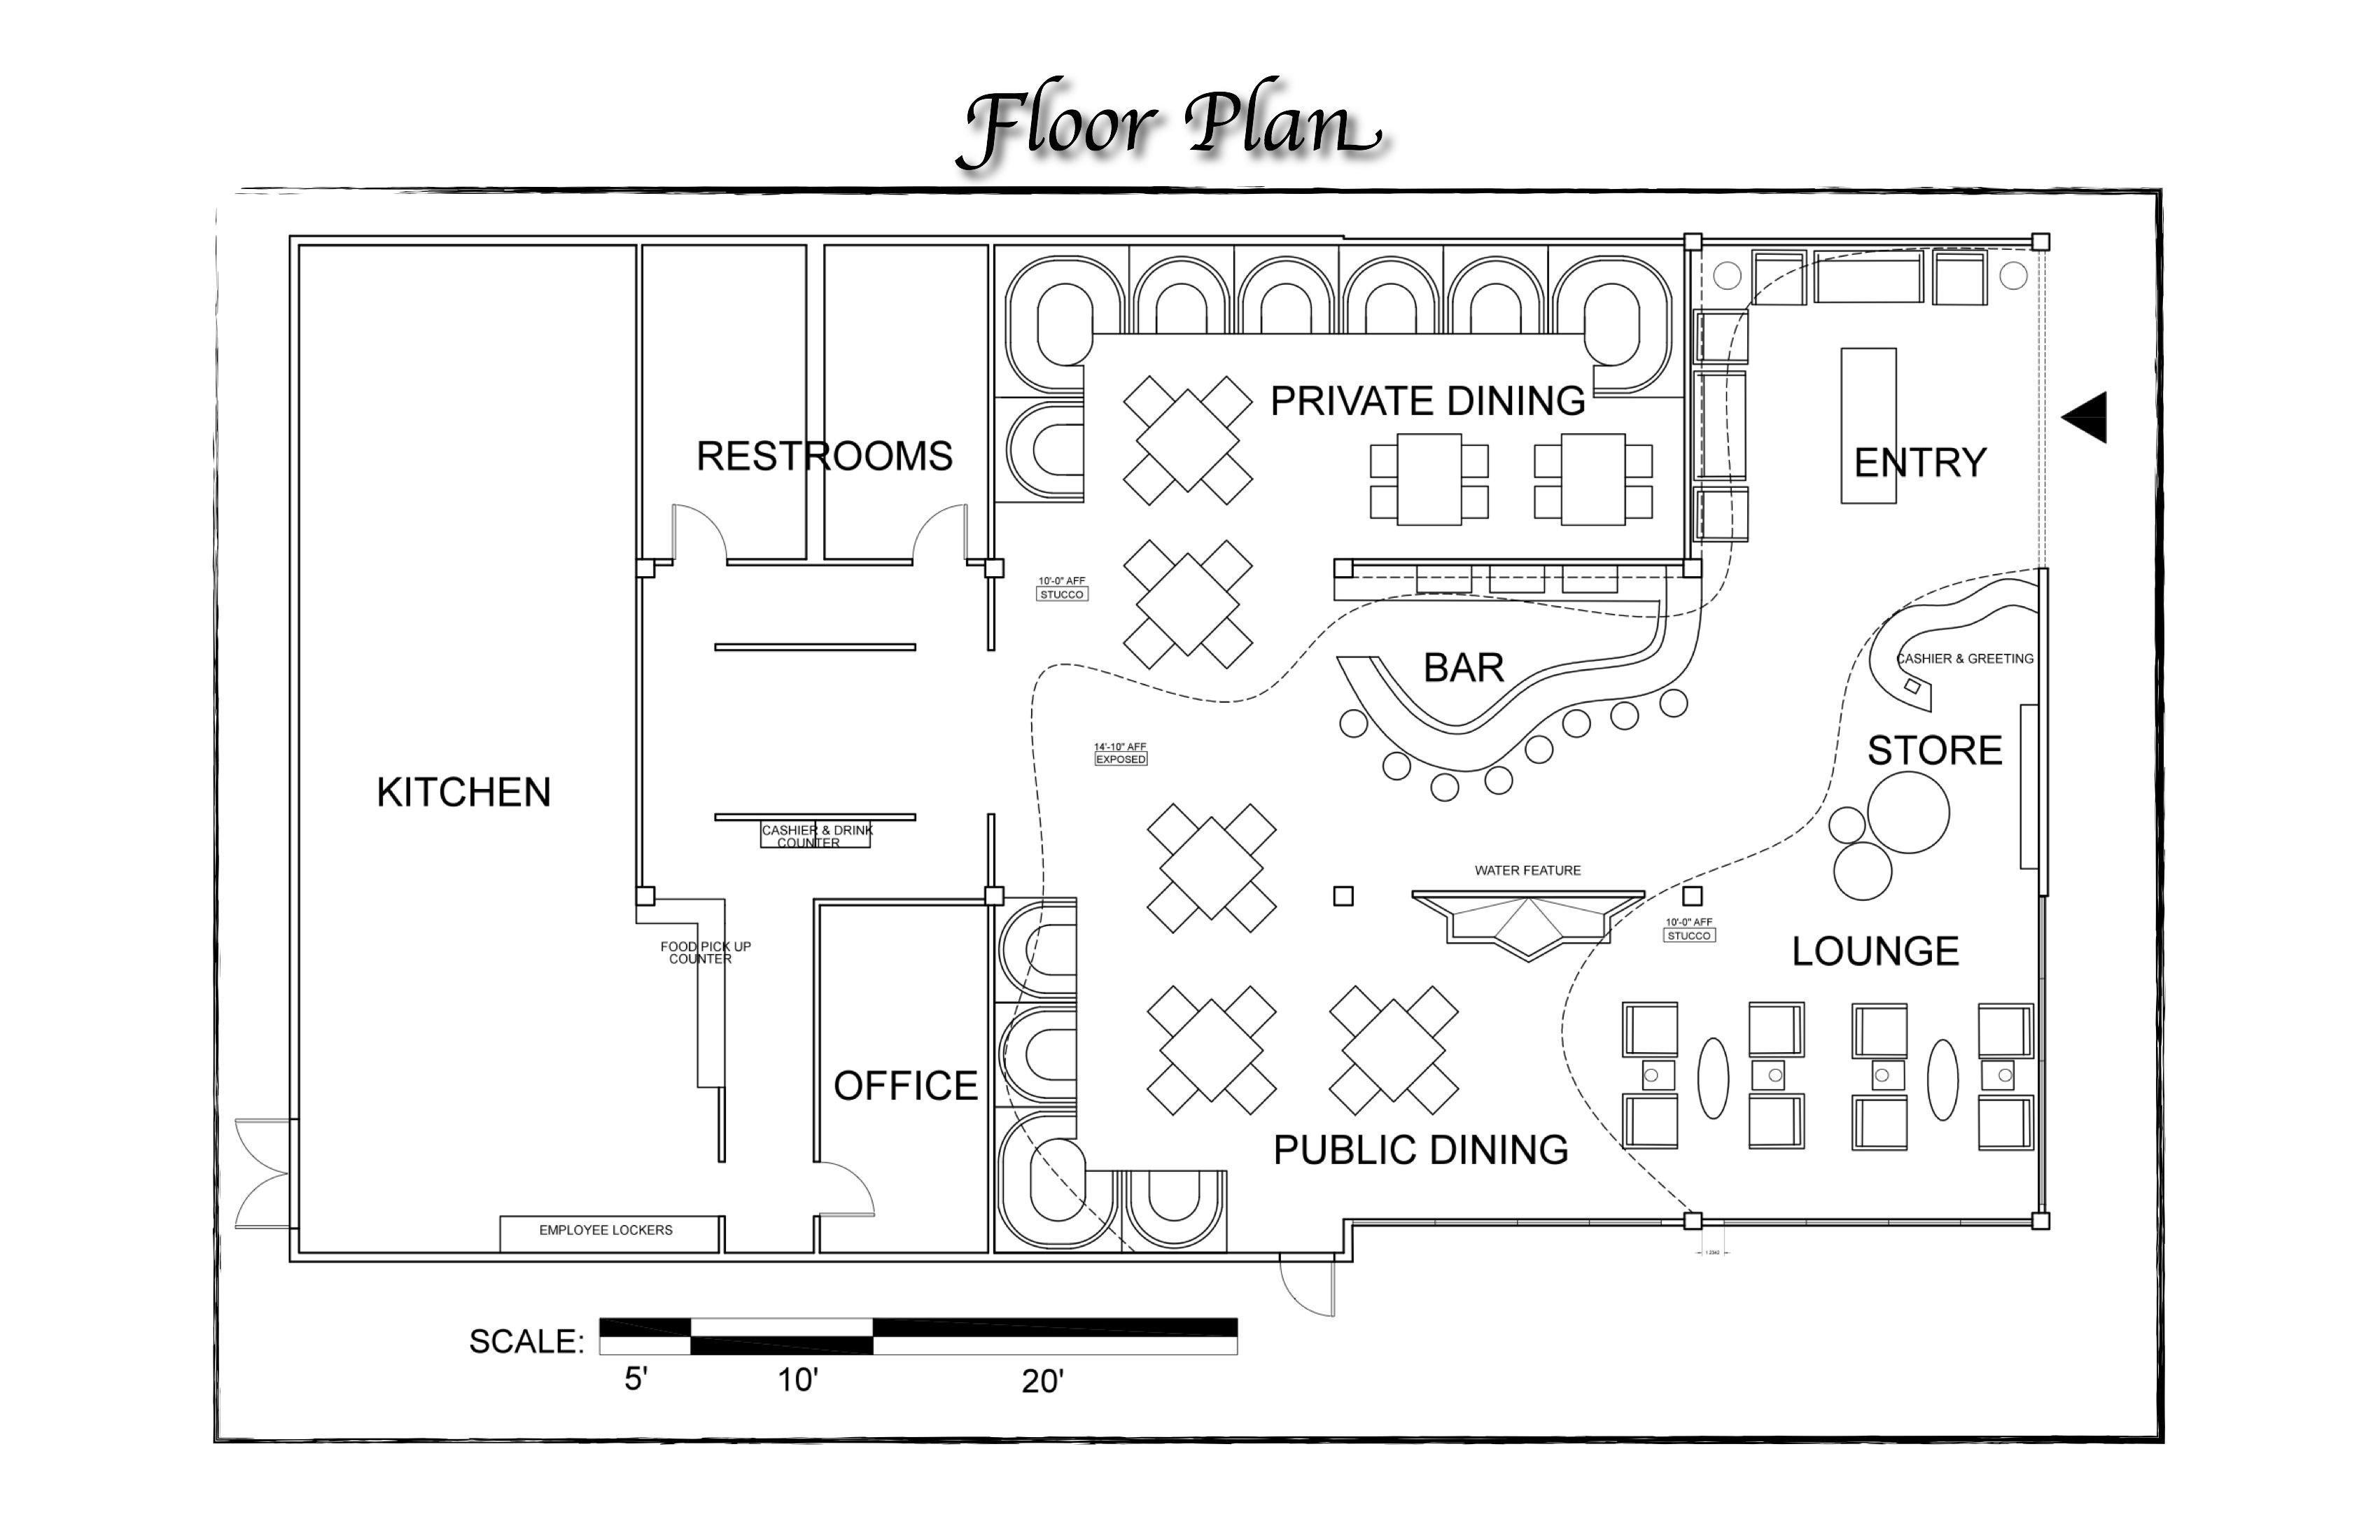 Restaurant Floor Plan Layout: Floor Plans For Restaurants